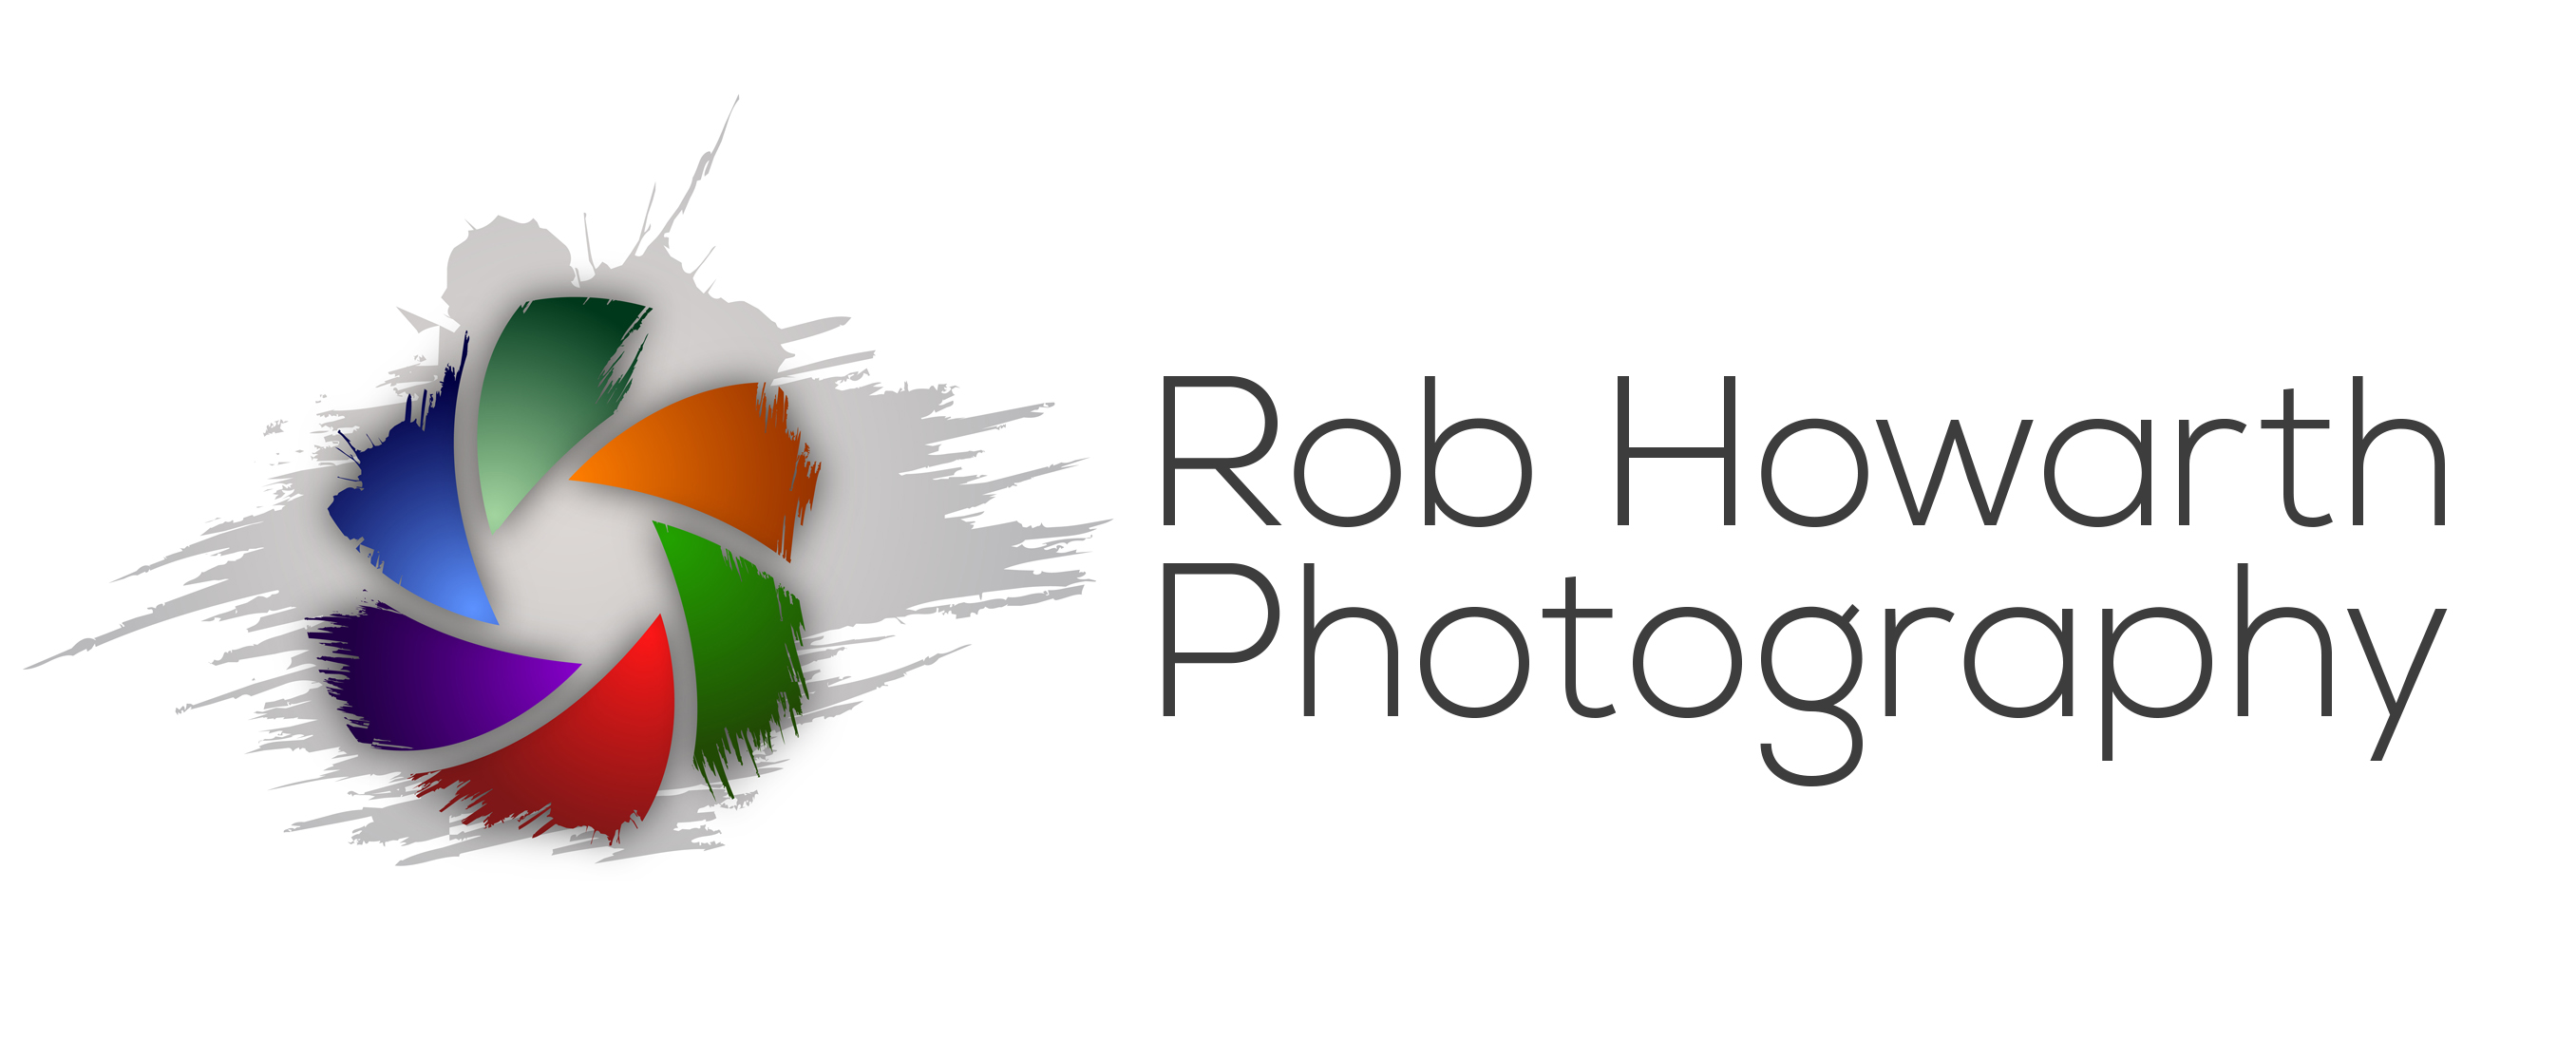 Rob Howarth Photography